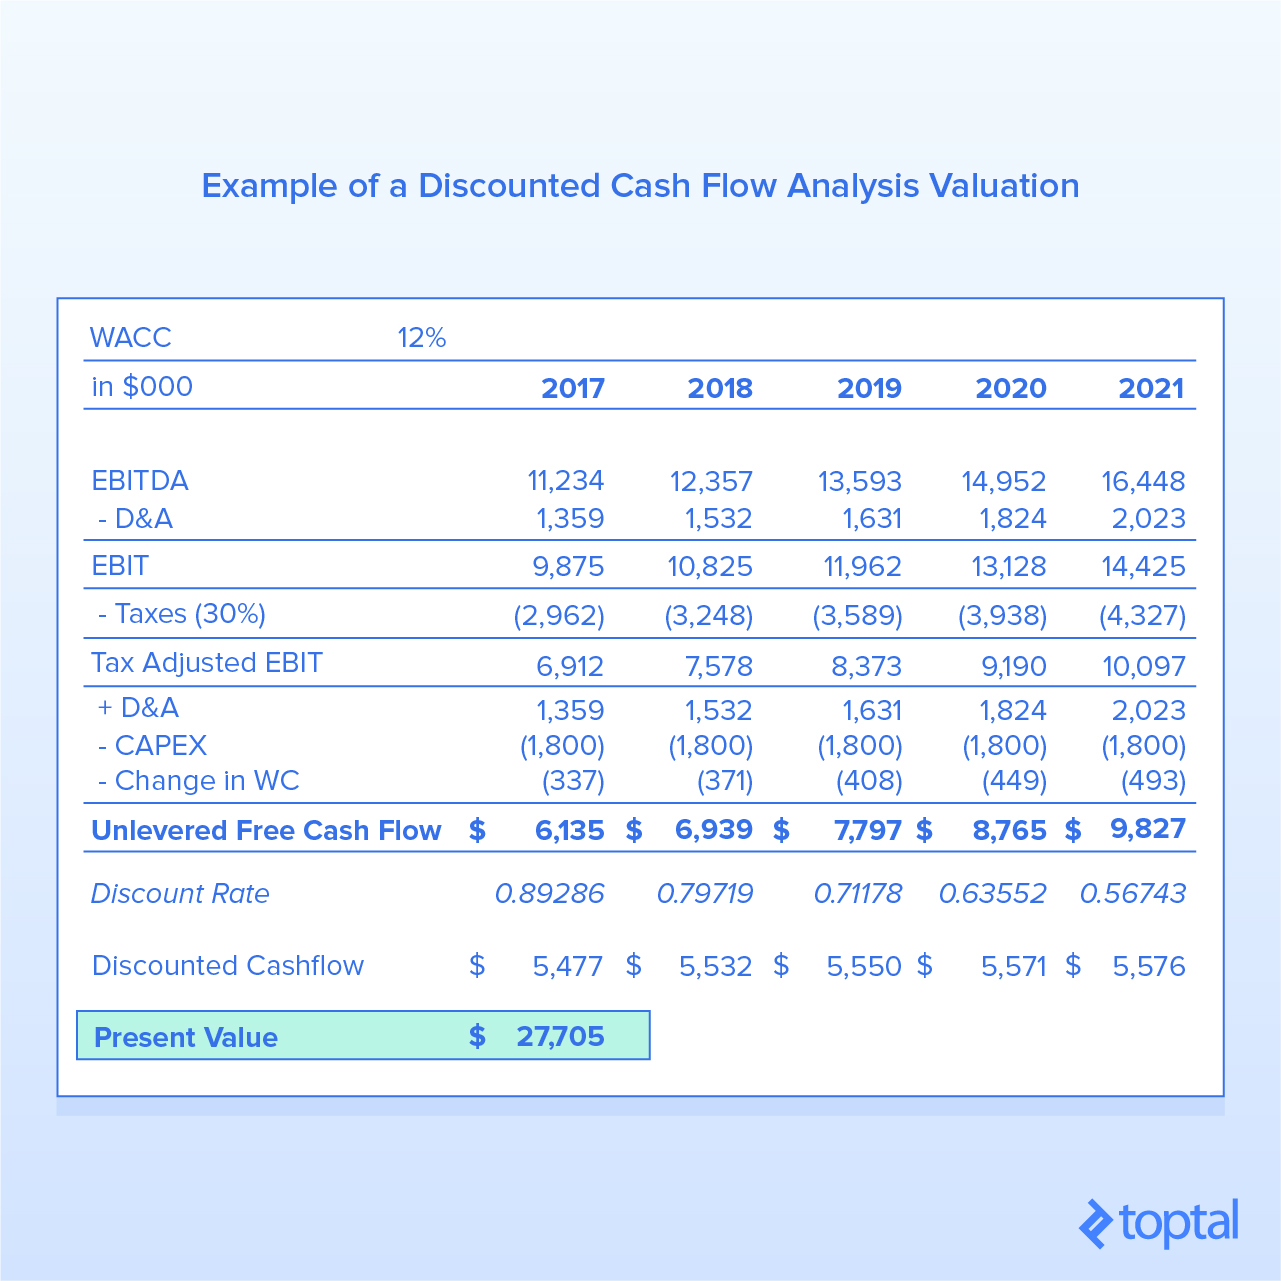 Figure 3: Example of a Discounted Cash Flow Analysis Valuation